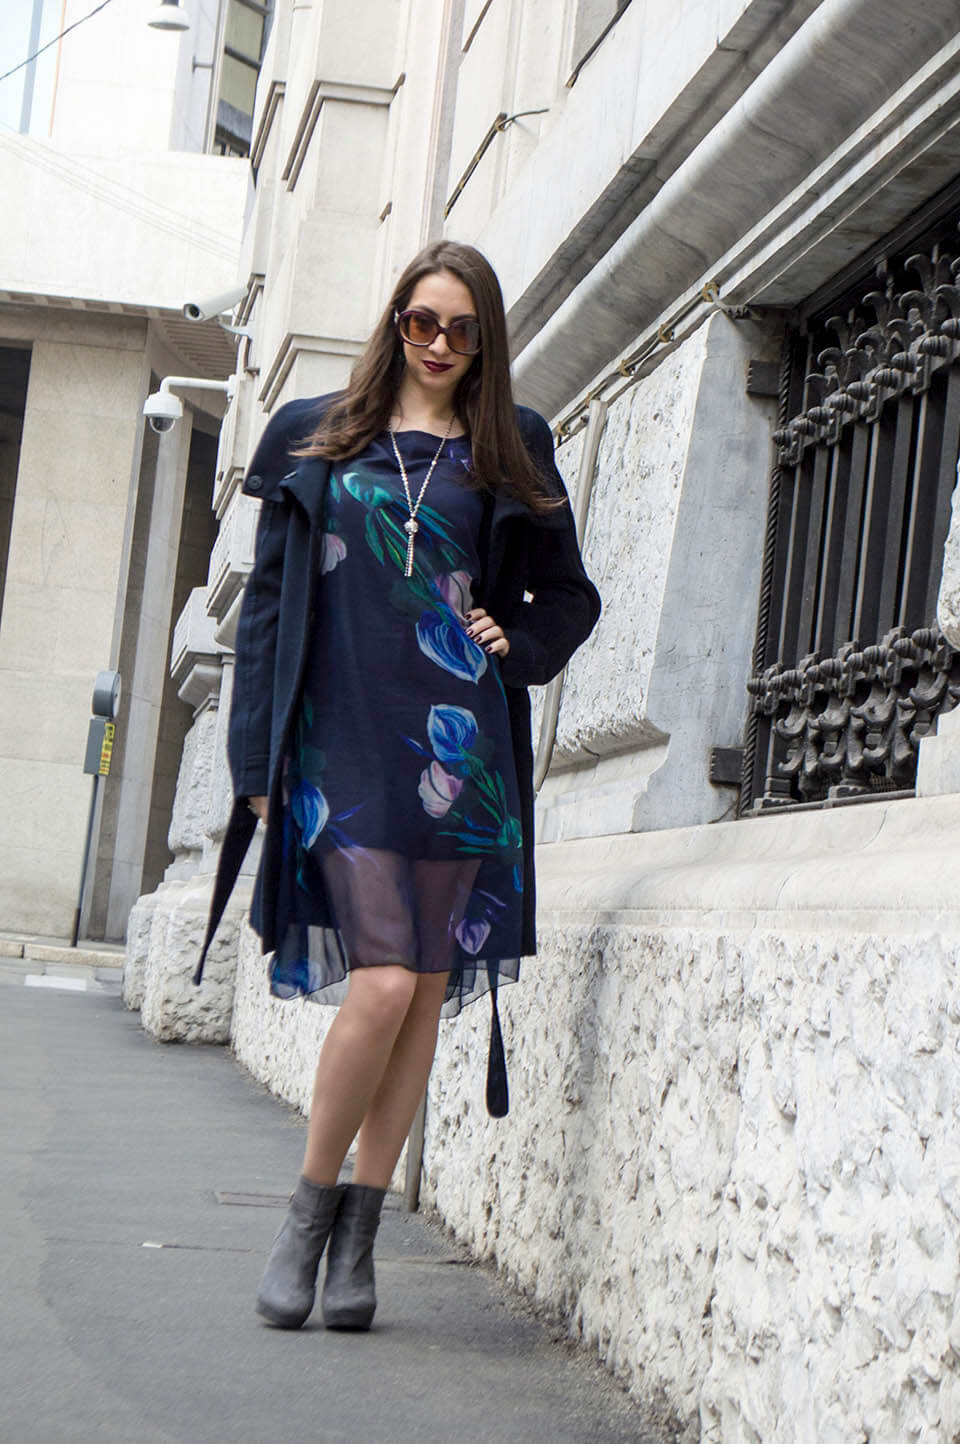 Floral Dress with coat in Milan